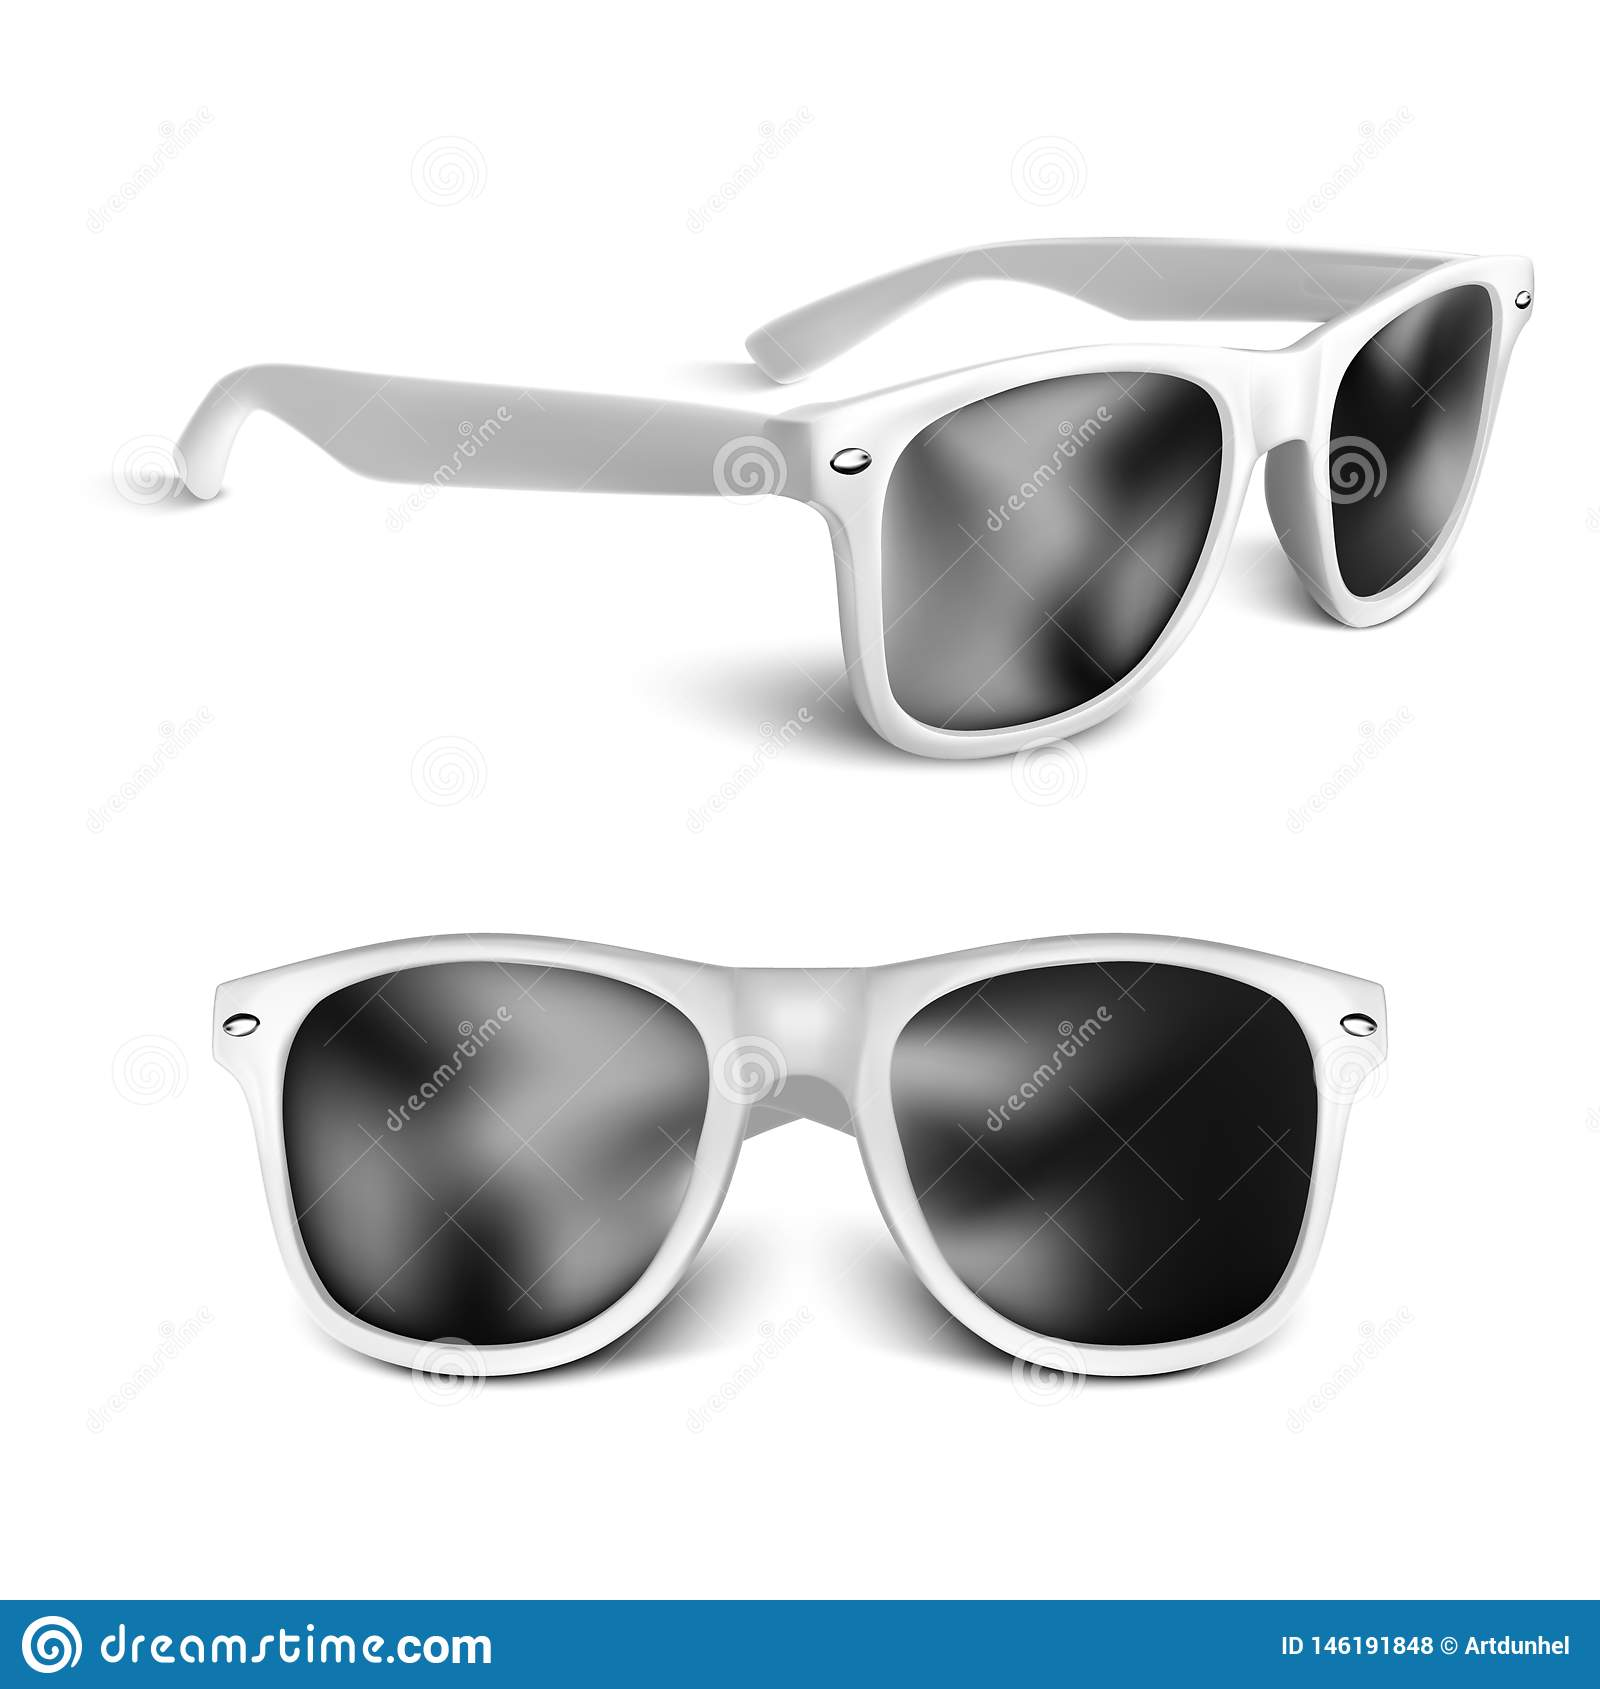 Realistic white sun glasses isolated on white background. vector illustration